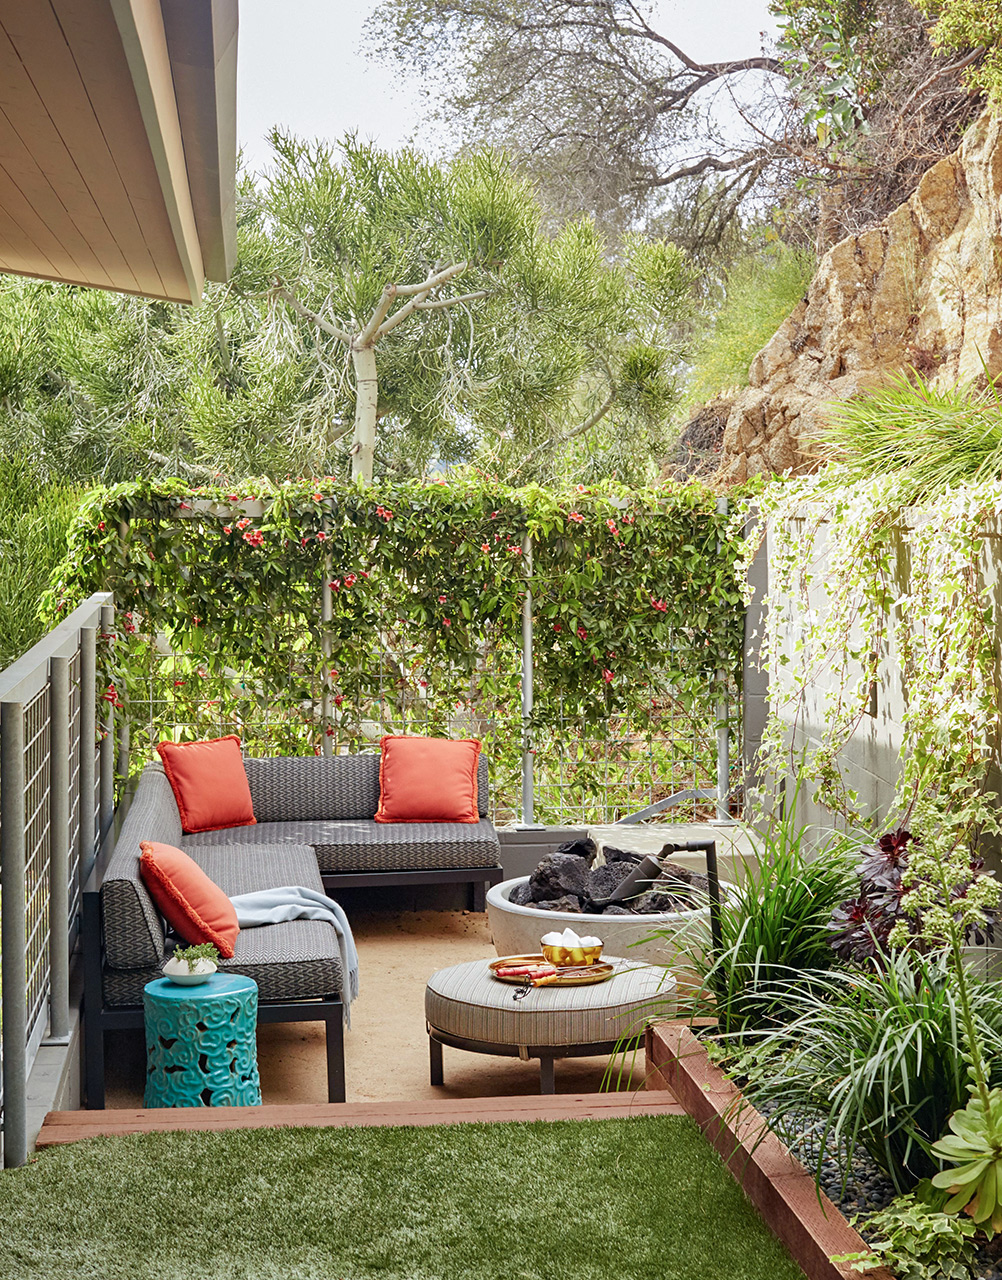 13 Budget-Friendly Backyard Ideas to Create the Ultimate Outdoor